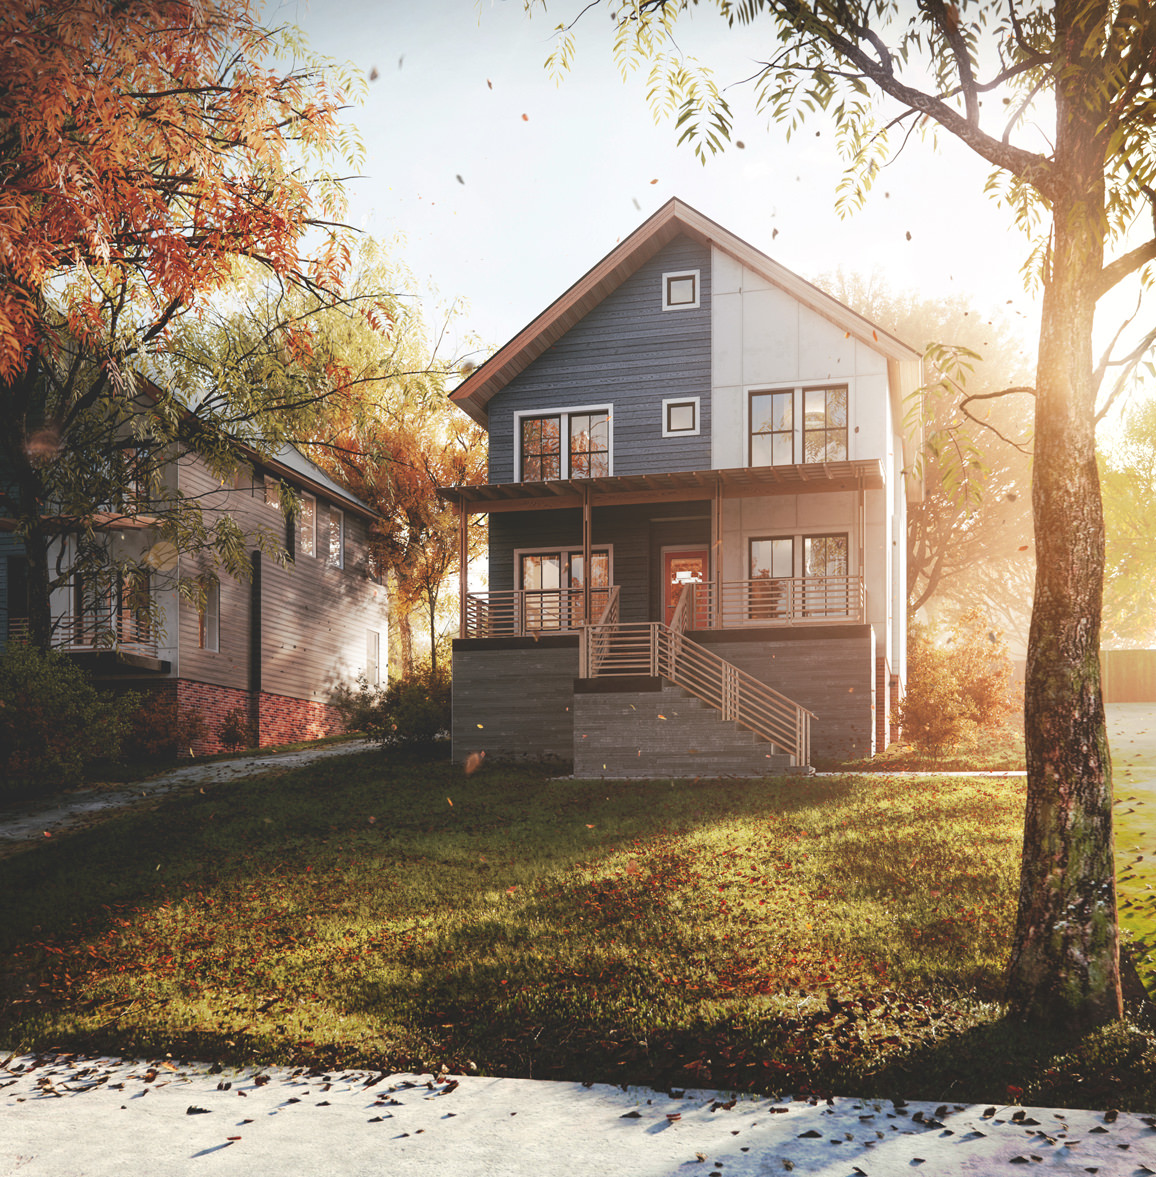 Photorealistic architectural 3D render of a small house in autumn scenery